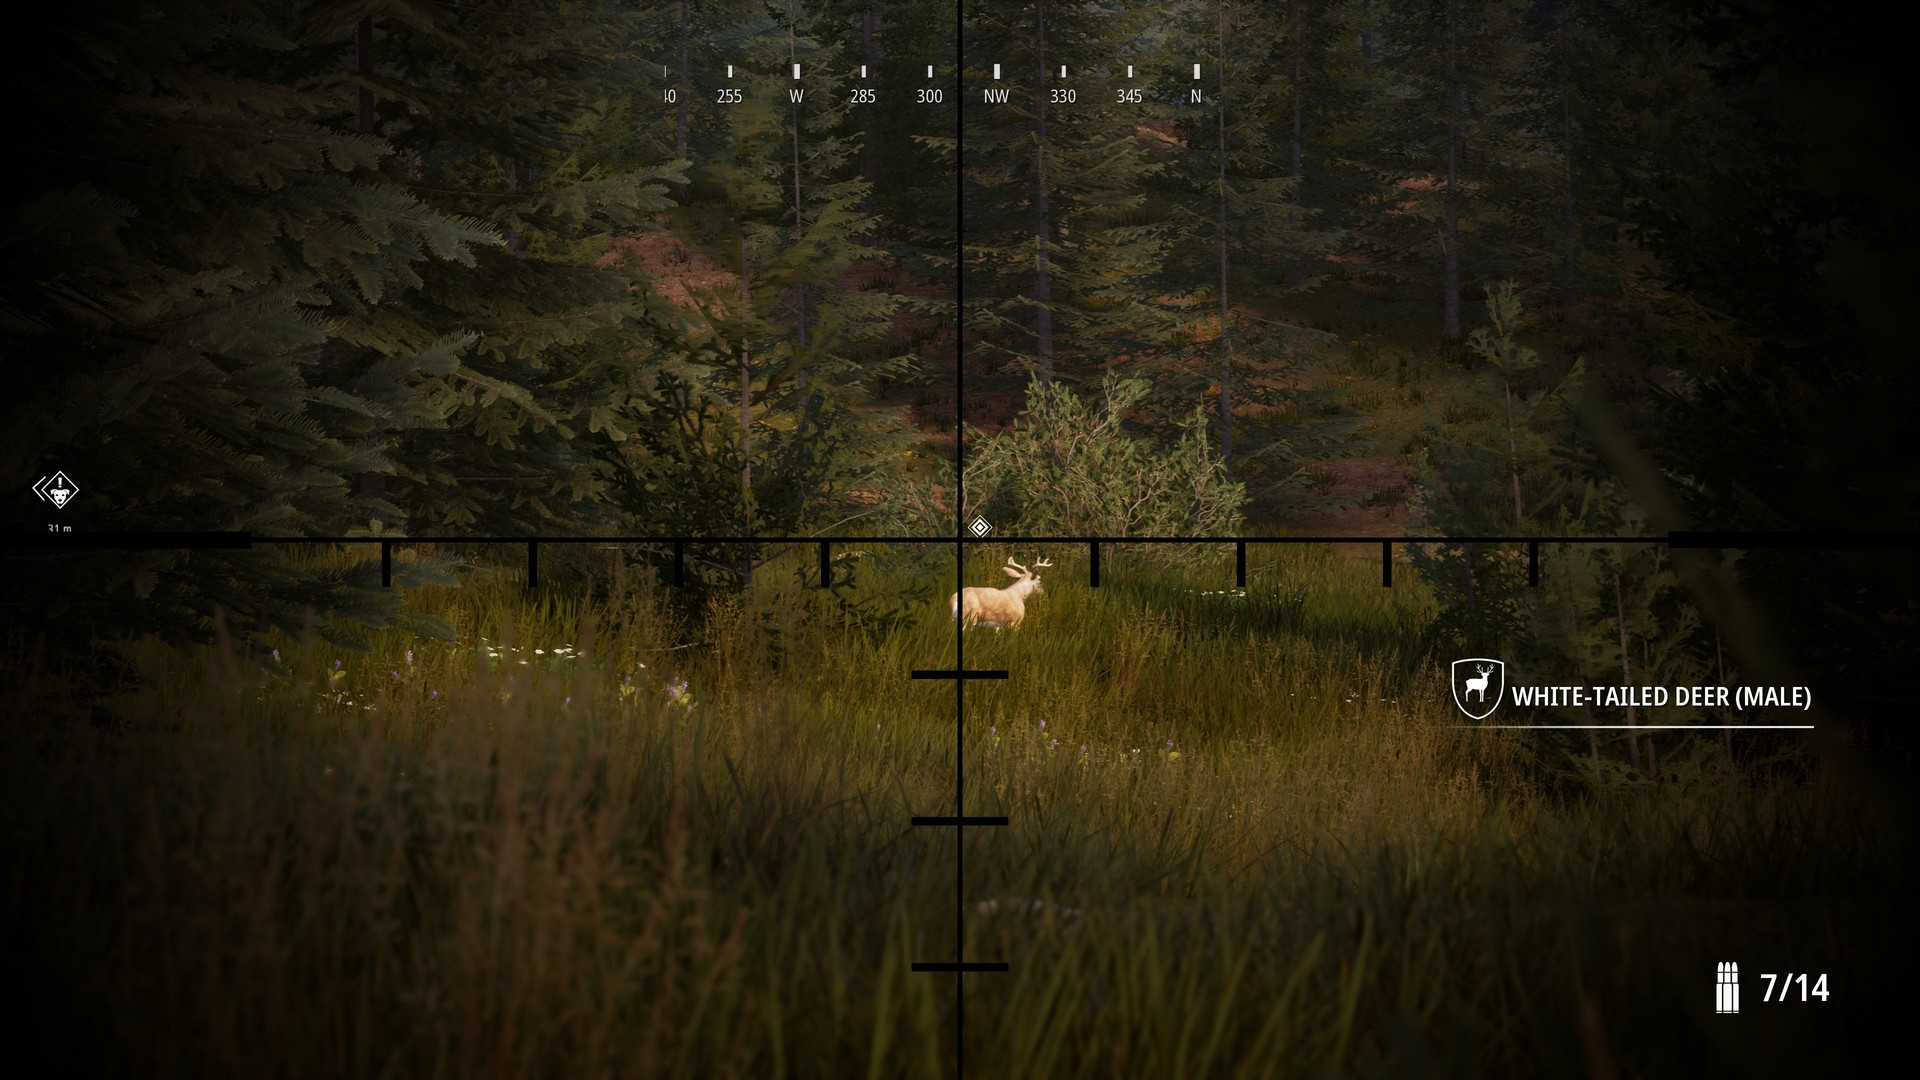 Hunting Simulator 2 Review | Bonus Stage is the world's leading source for  Playstation 5, Xbox Series X, Nintendo Switch, PC, Playstation 4, Xbox One,  3DS, Wii U, Wii, Playstation 3, Xbox